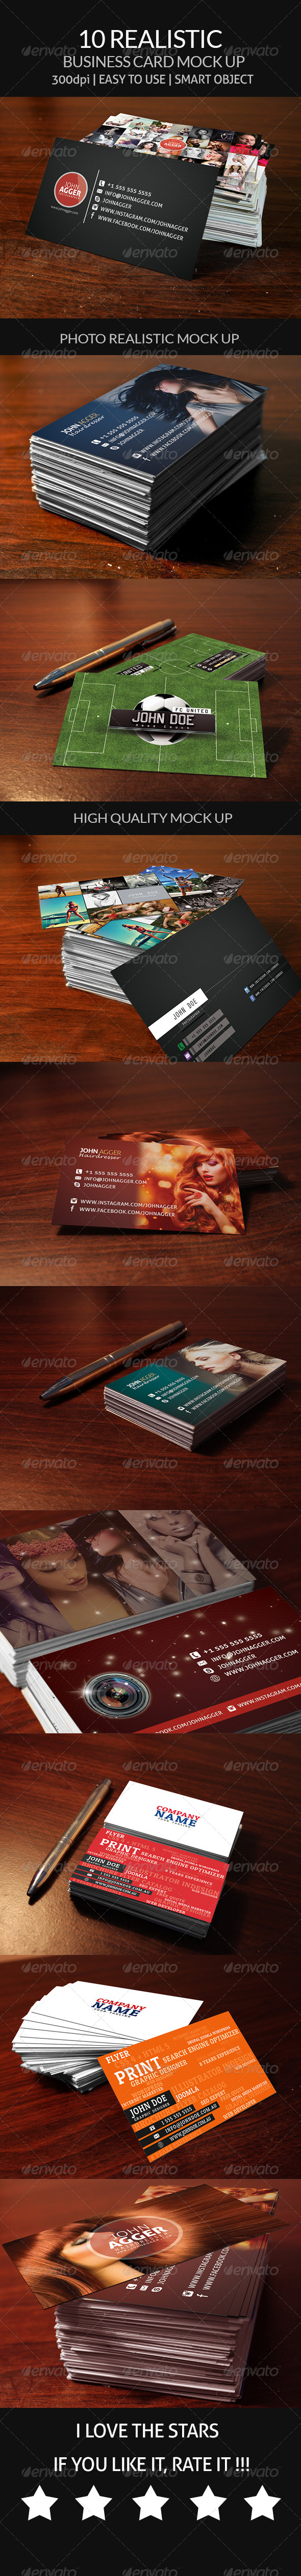 10 Realistic Business Card Mock Up